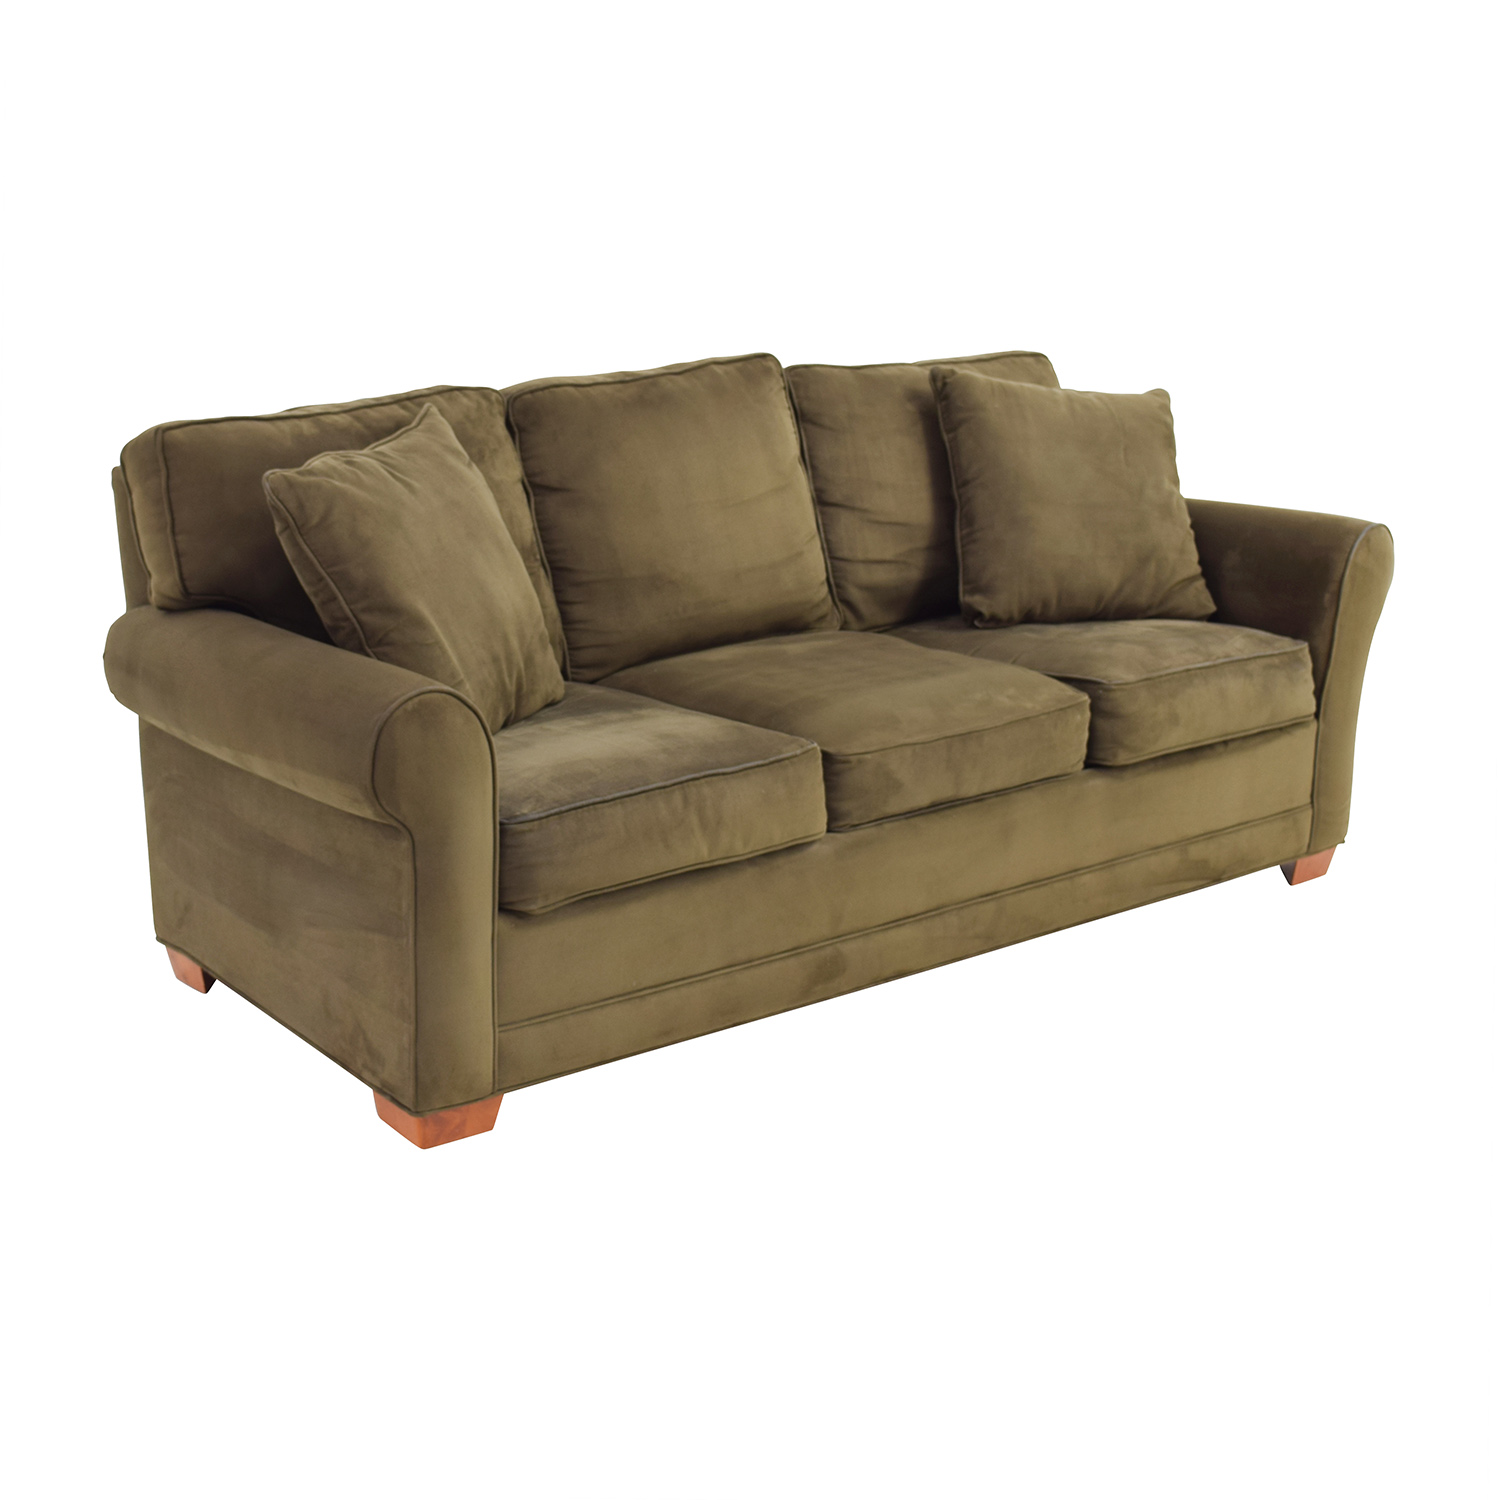 raymond and flanigan sofa bed ashley furniture single fresno raymour gradschoolfairs